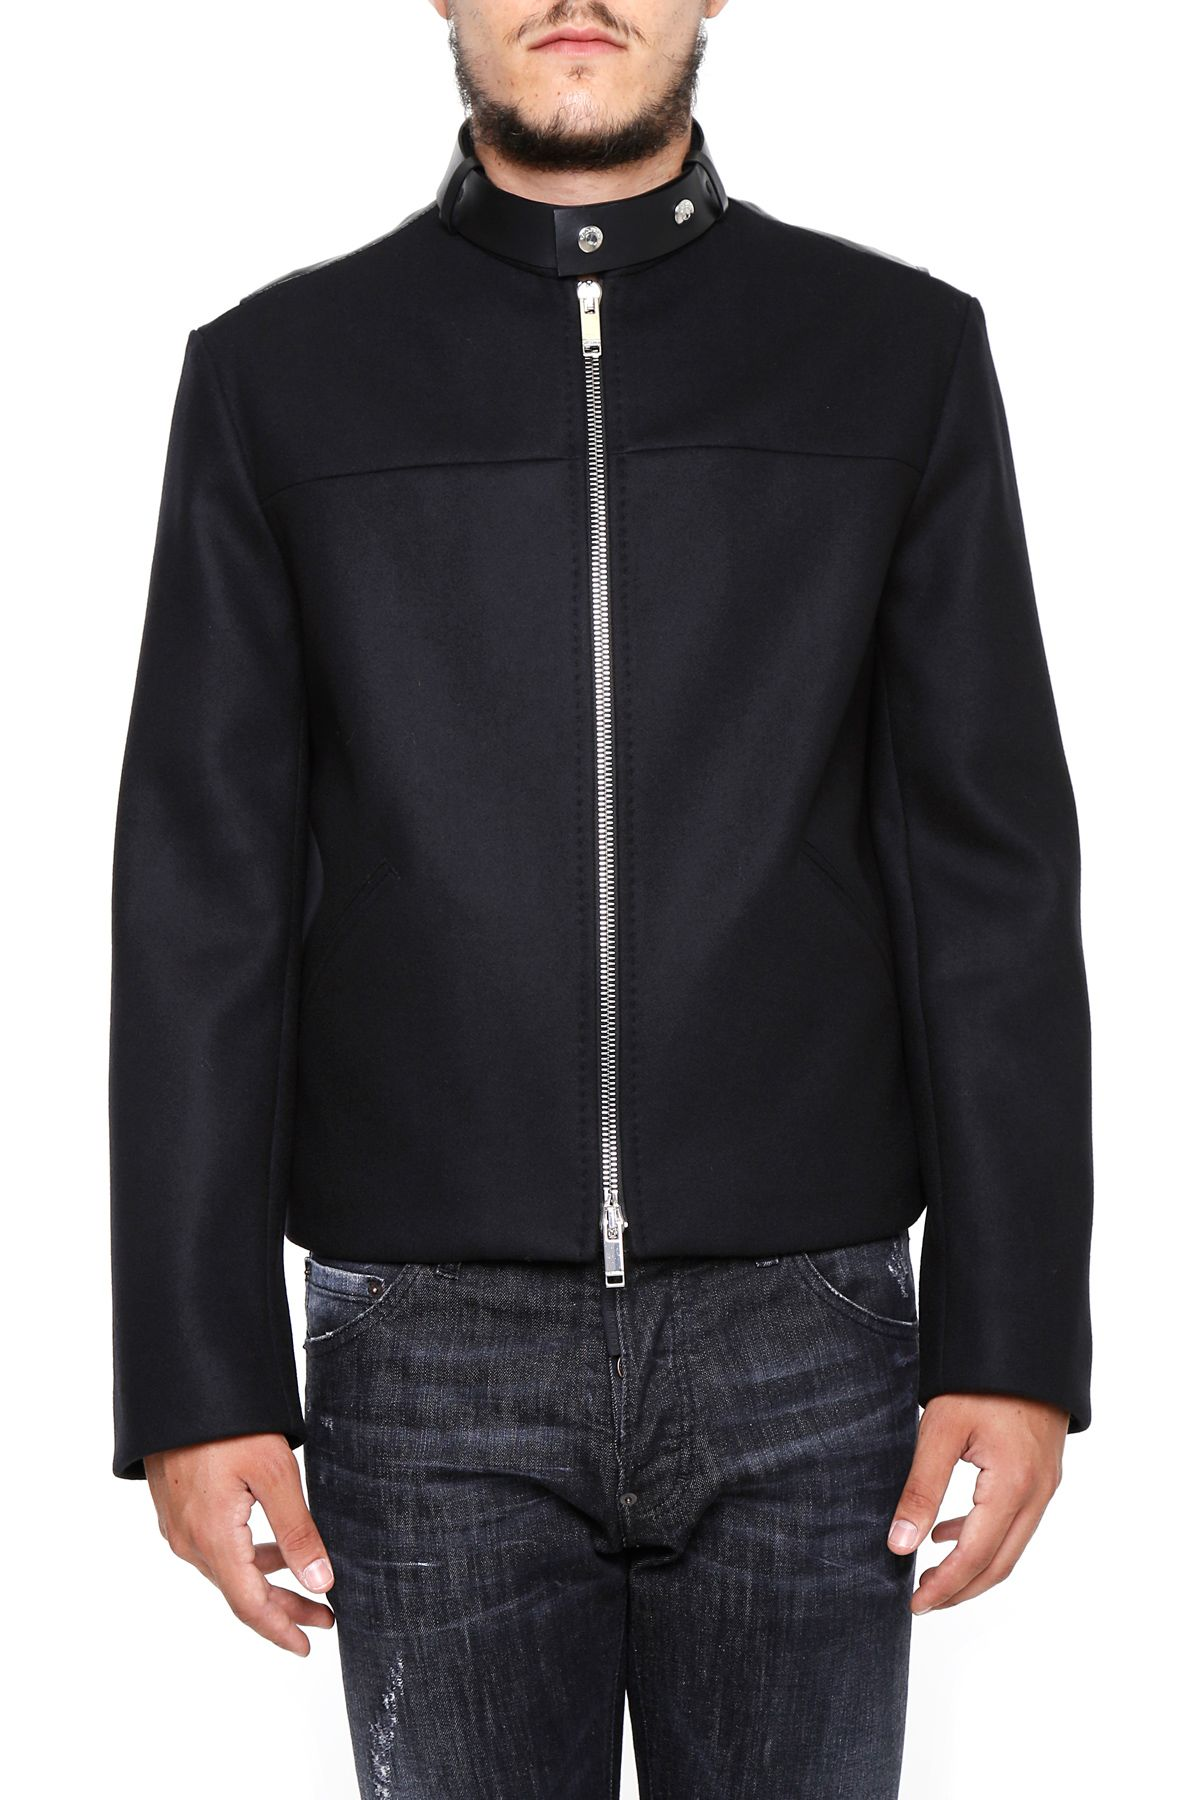 Valentino Leather And Wool Jacket